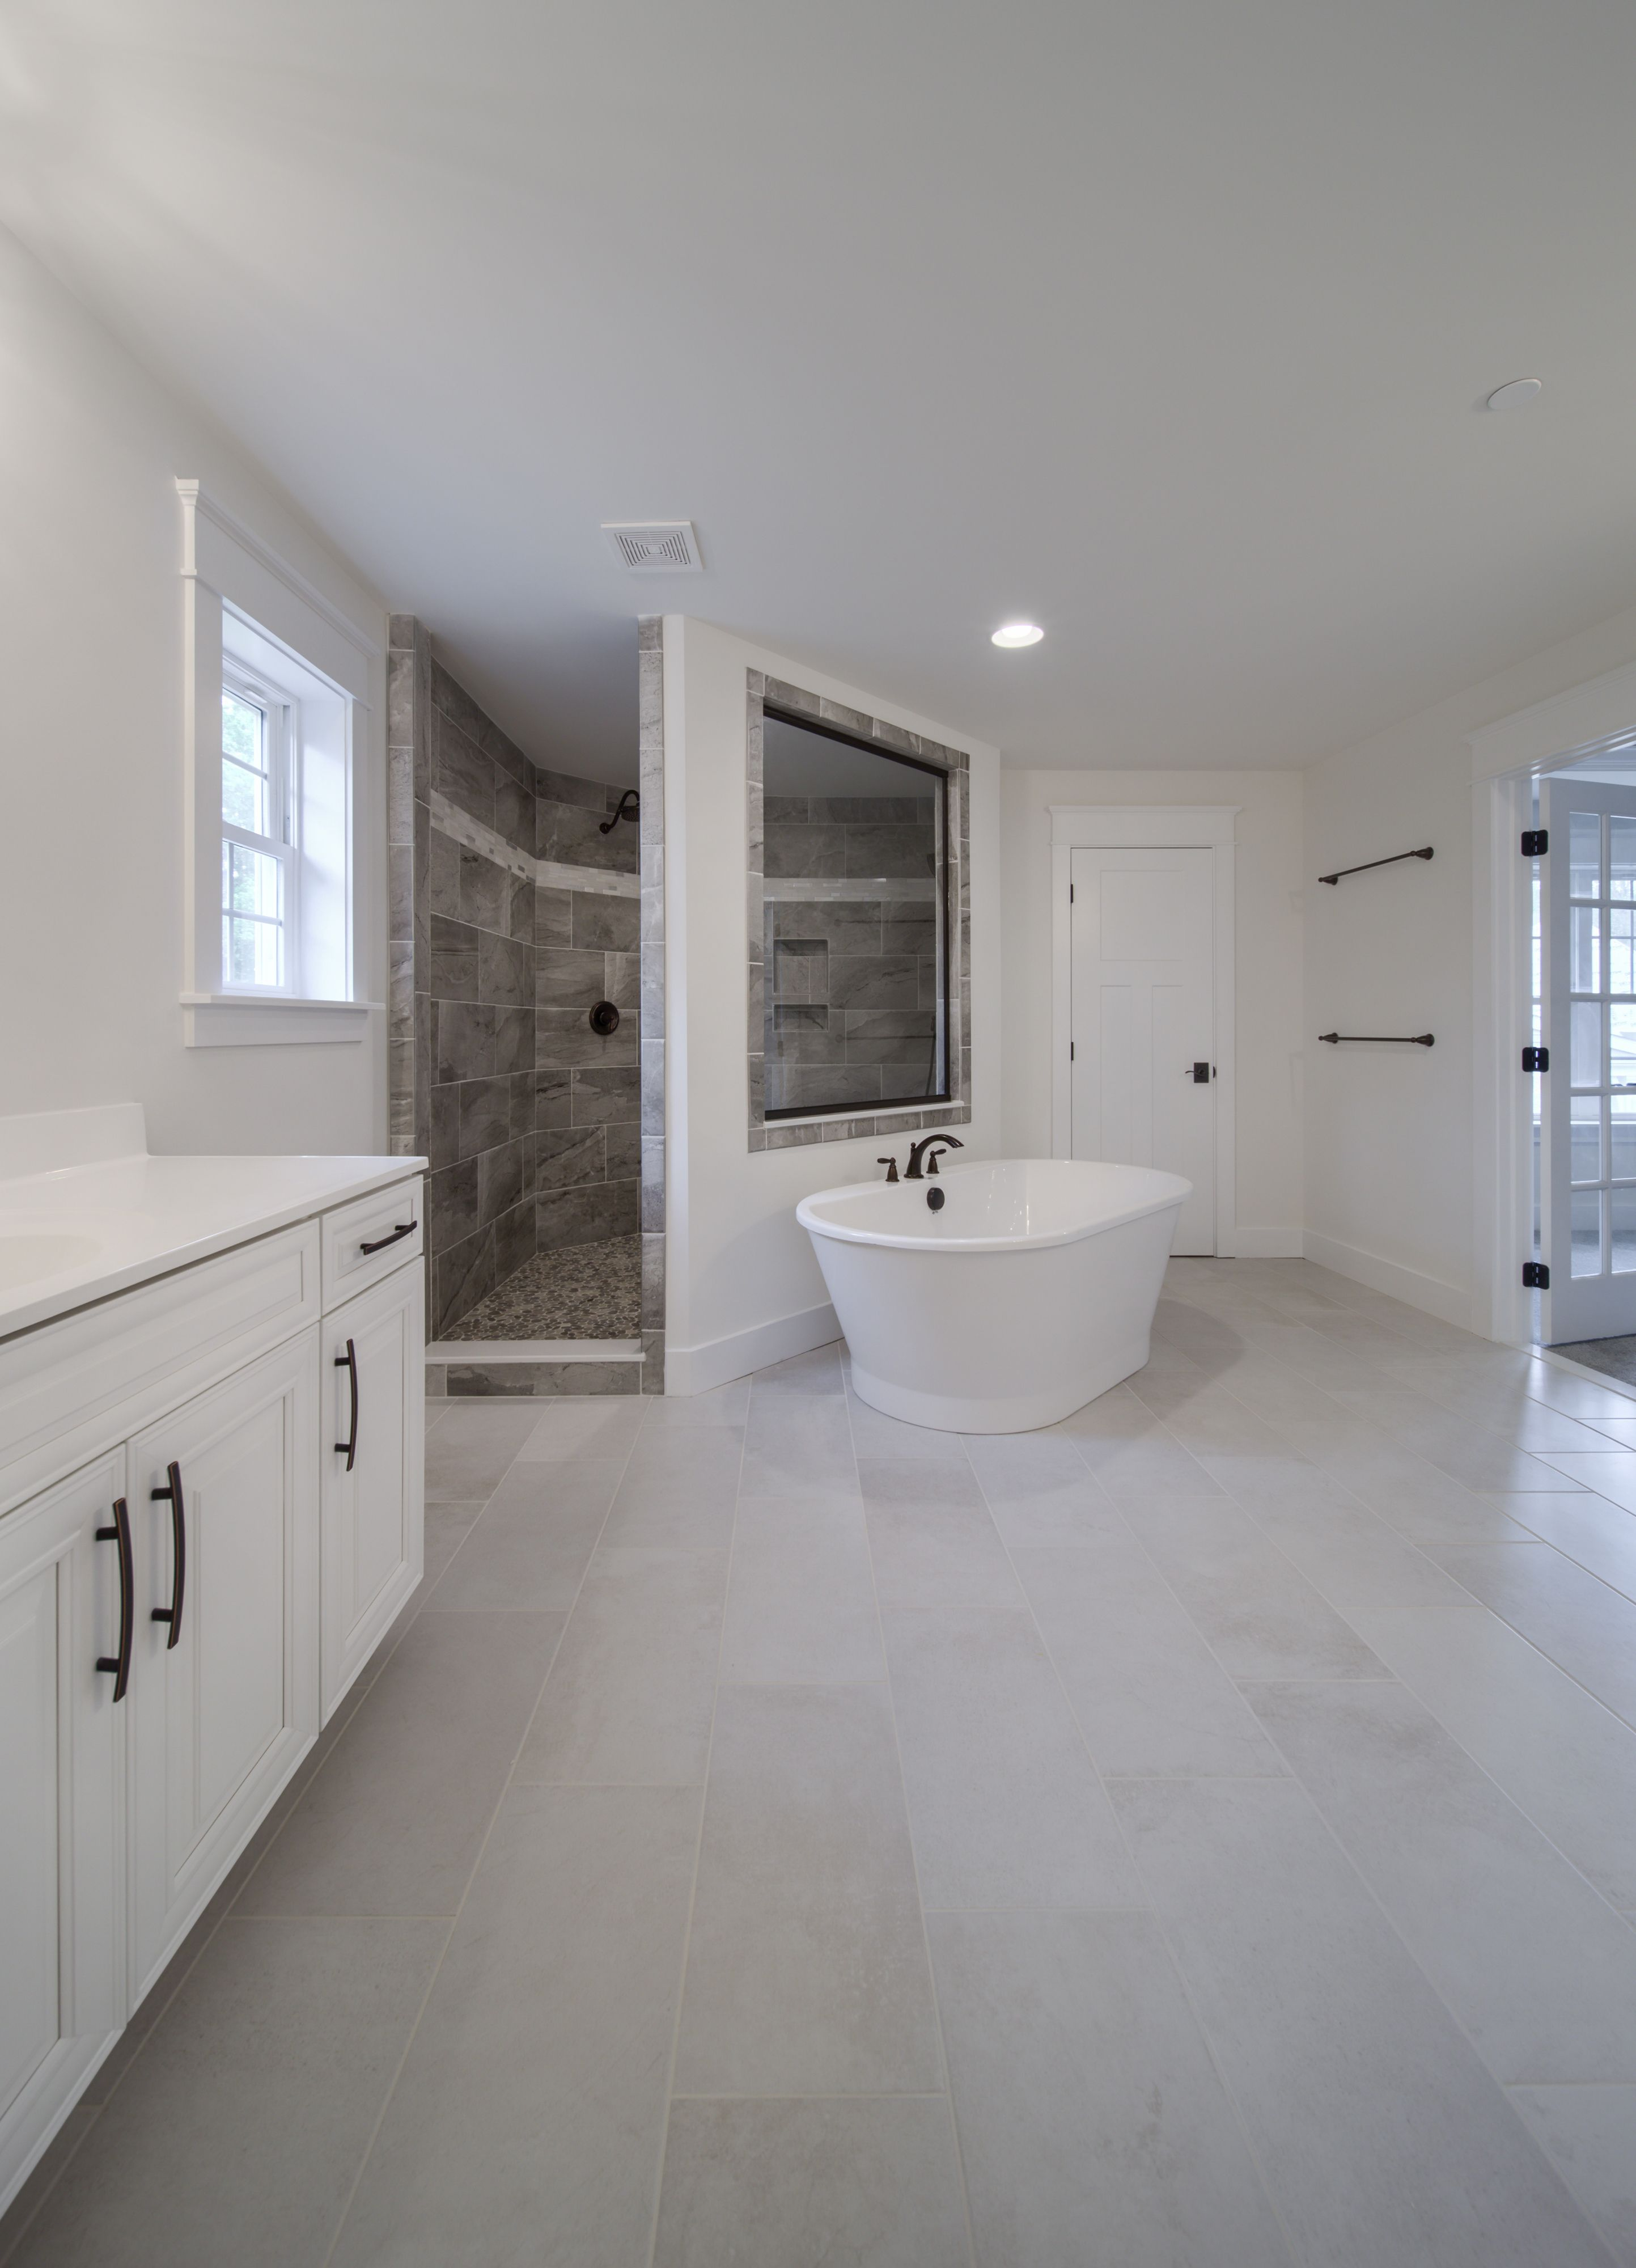 Bathroom featured in the Ethan Heritage By Keystone Custom Homes in Baltimore, MD